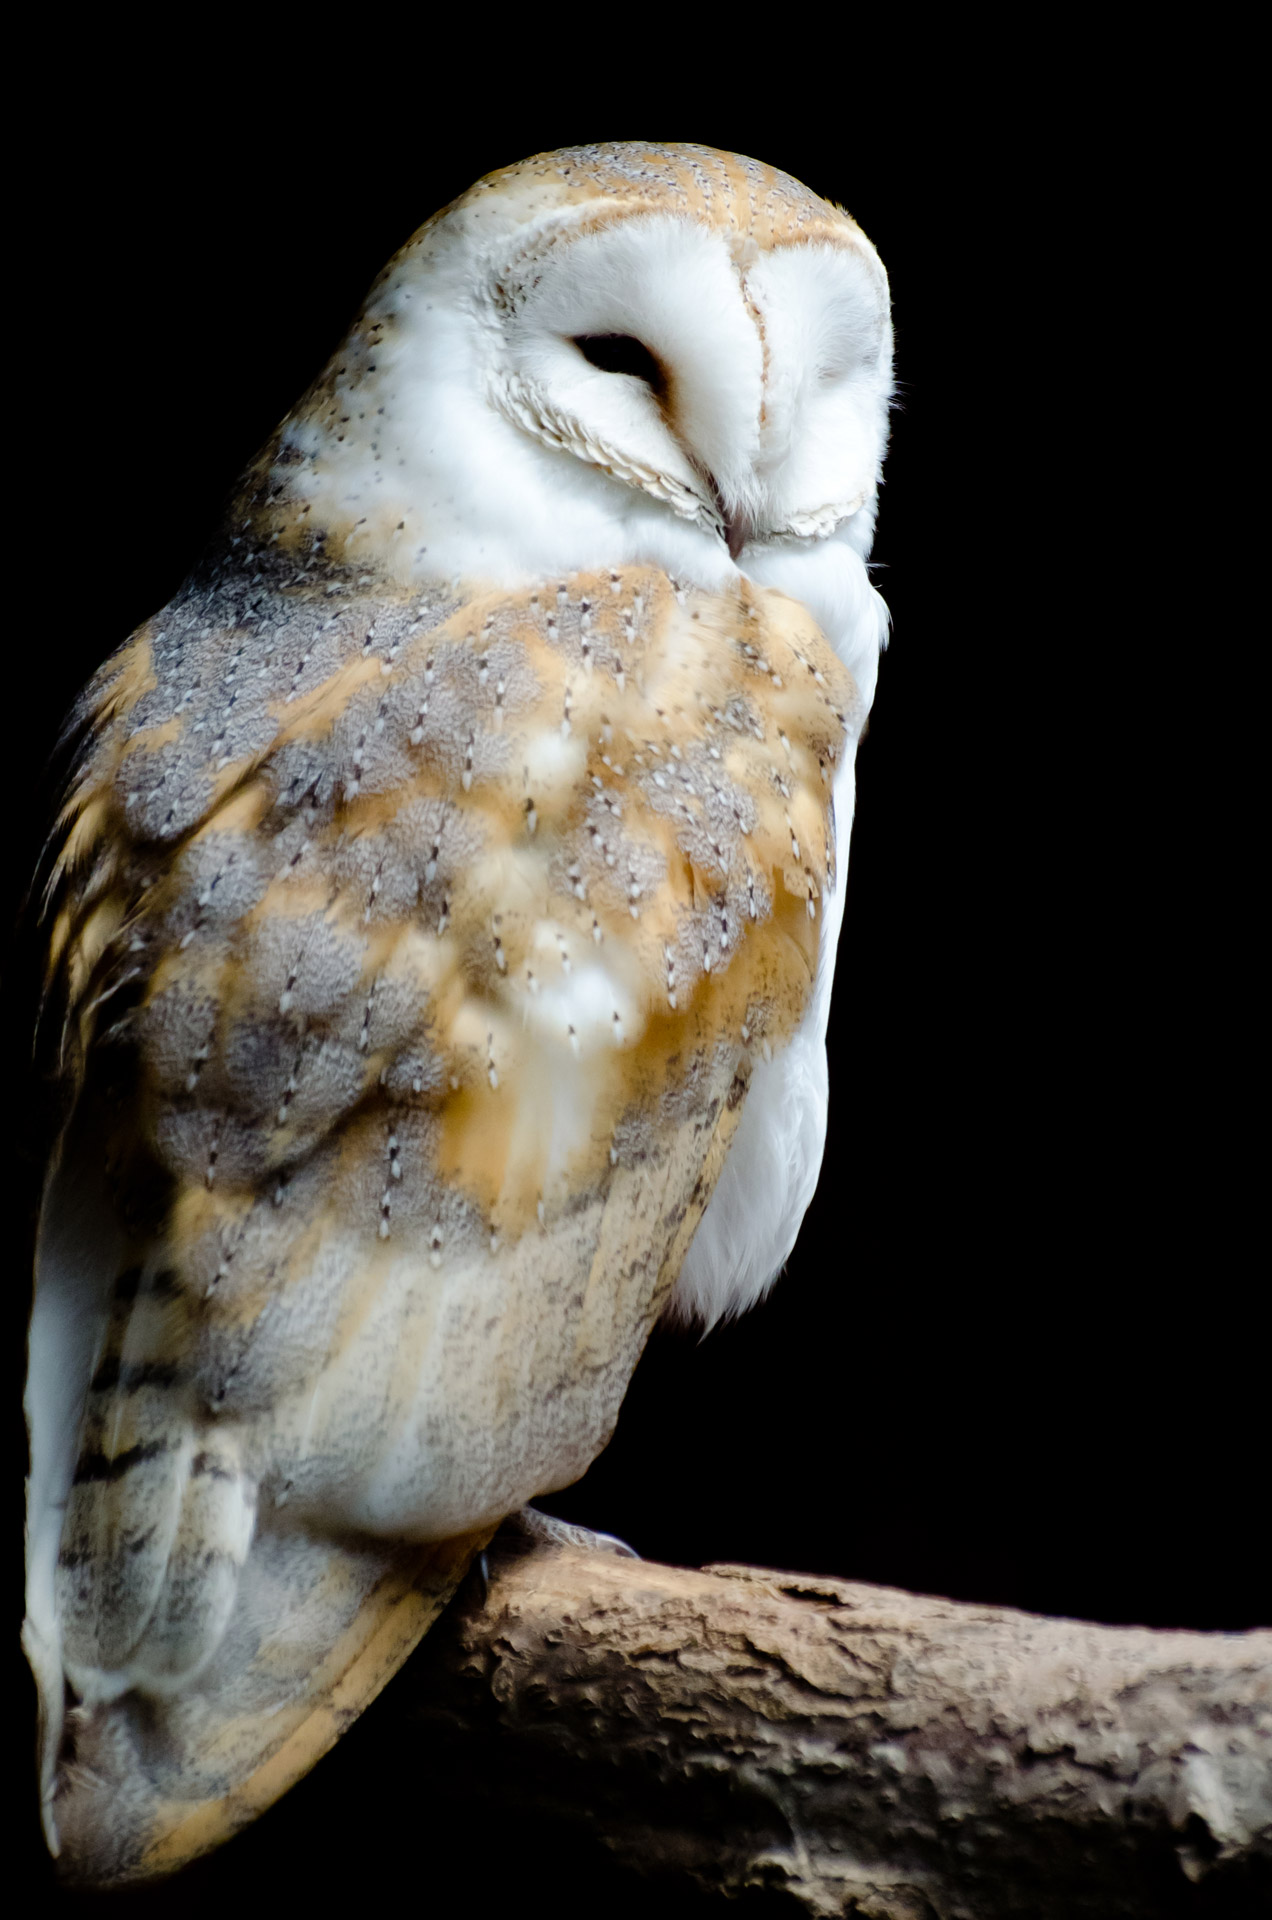 barn-owl-on-the-black-background.jpg